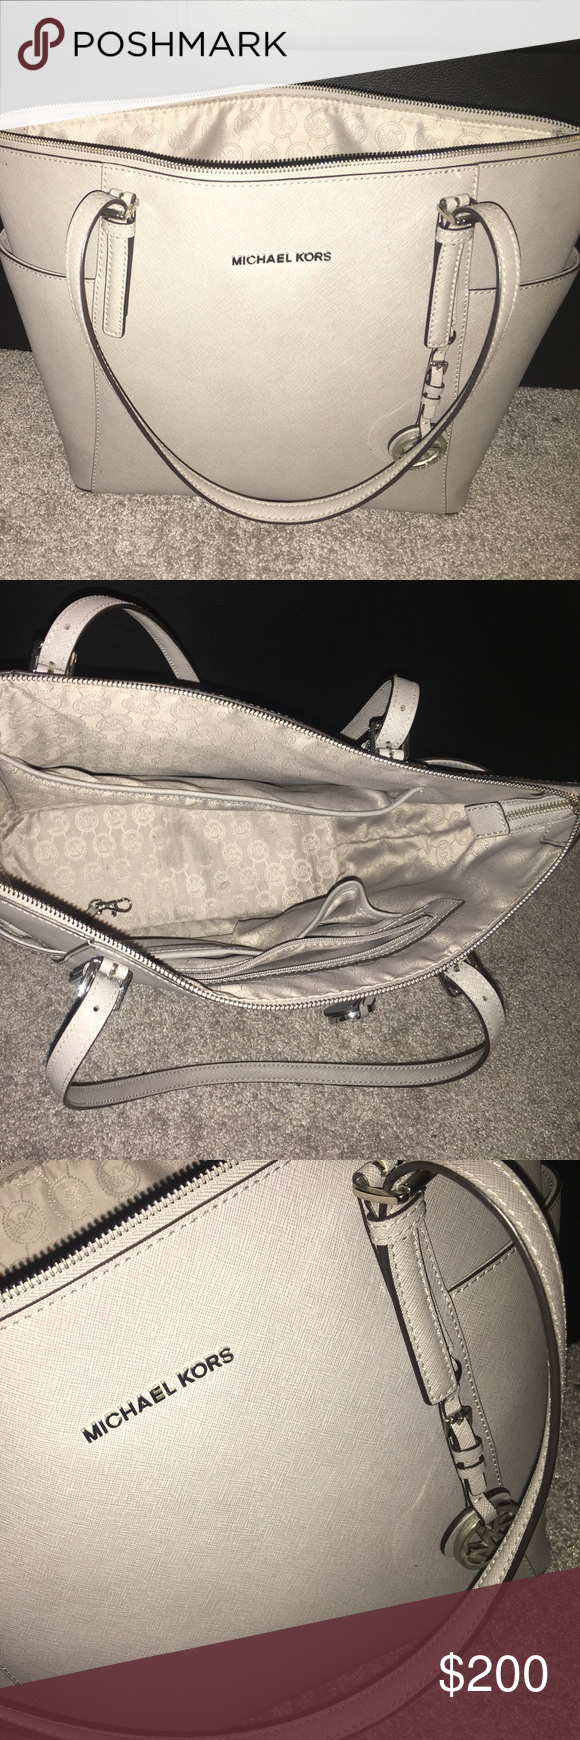 Michael kors handbag Grey jet set top zip tote Bags Totes